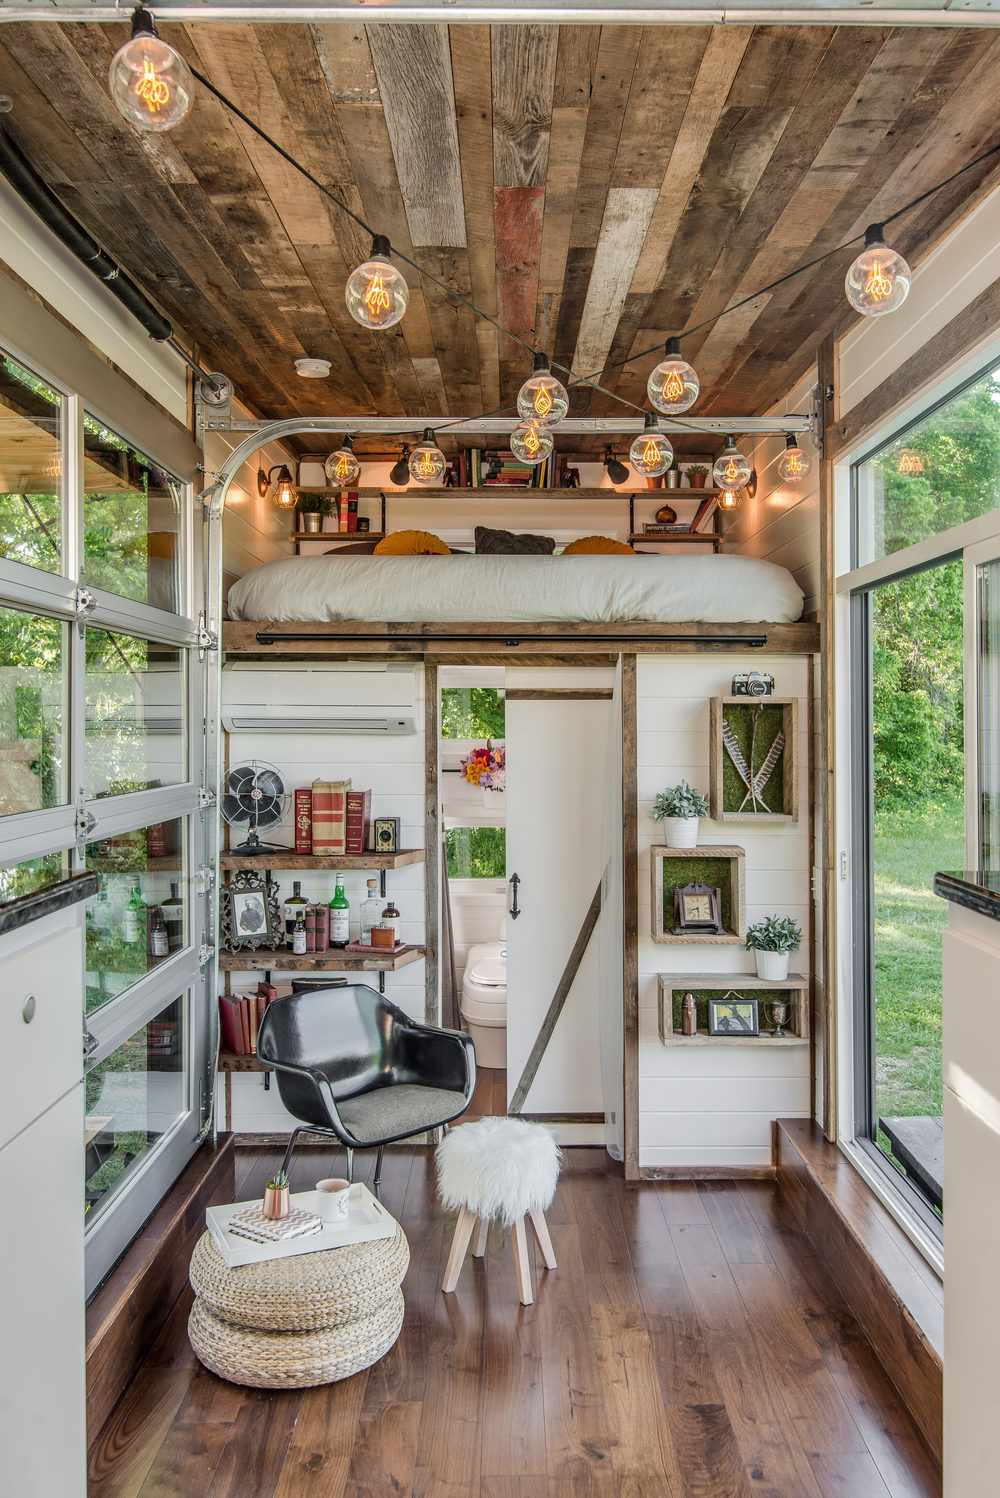 Tiny Home Designs: The Alpha: An Innovative Small House